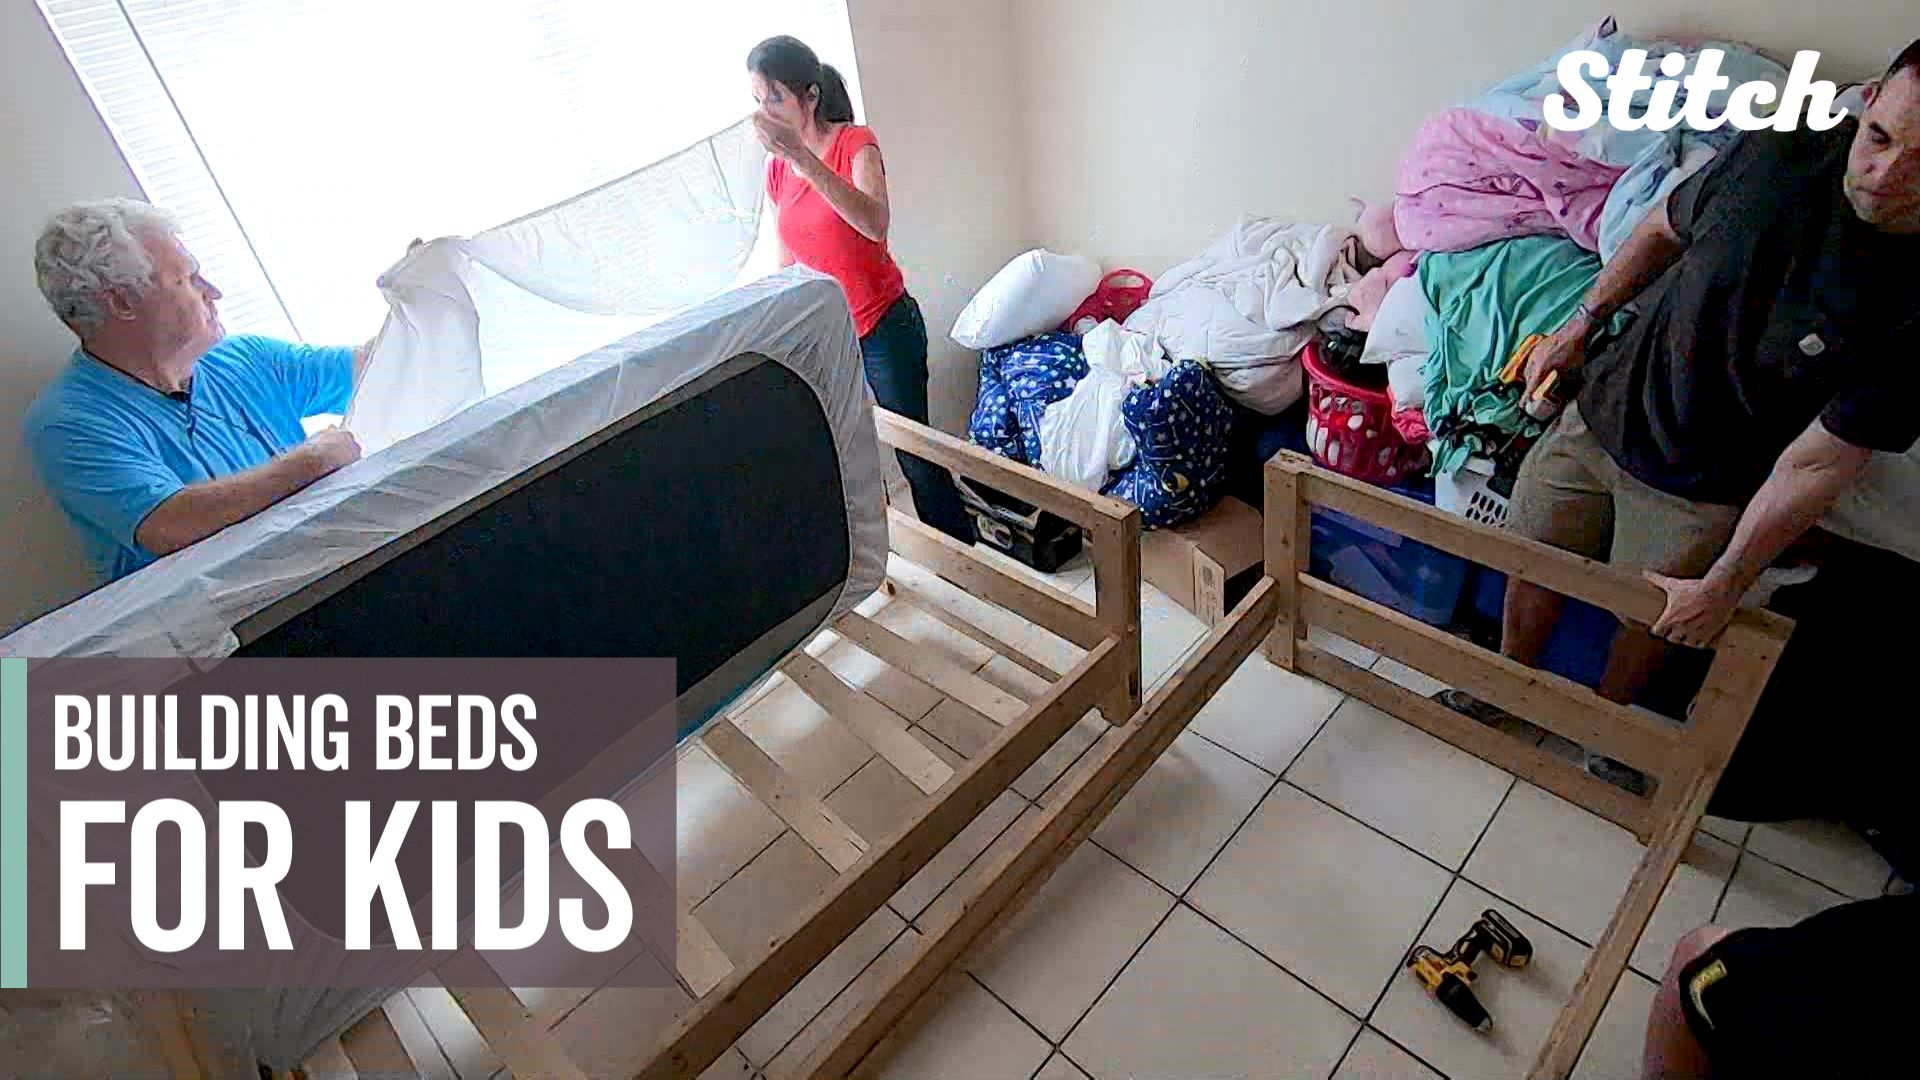 Organization Provides Builds Beds For Kids In Need